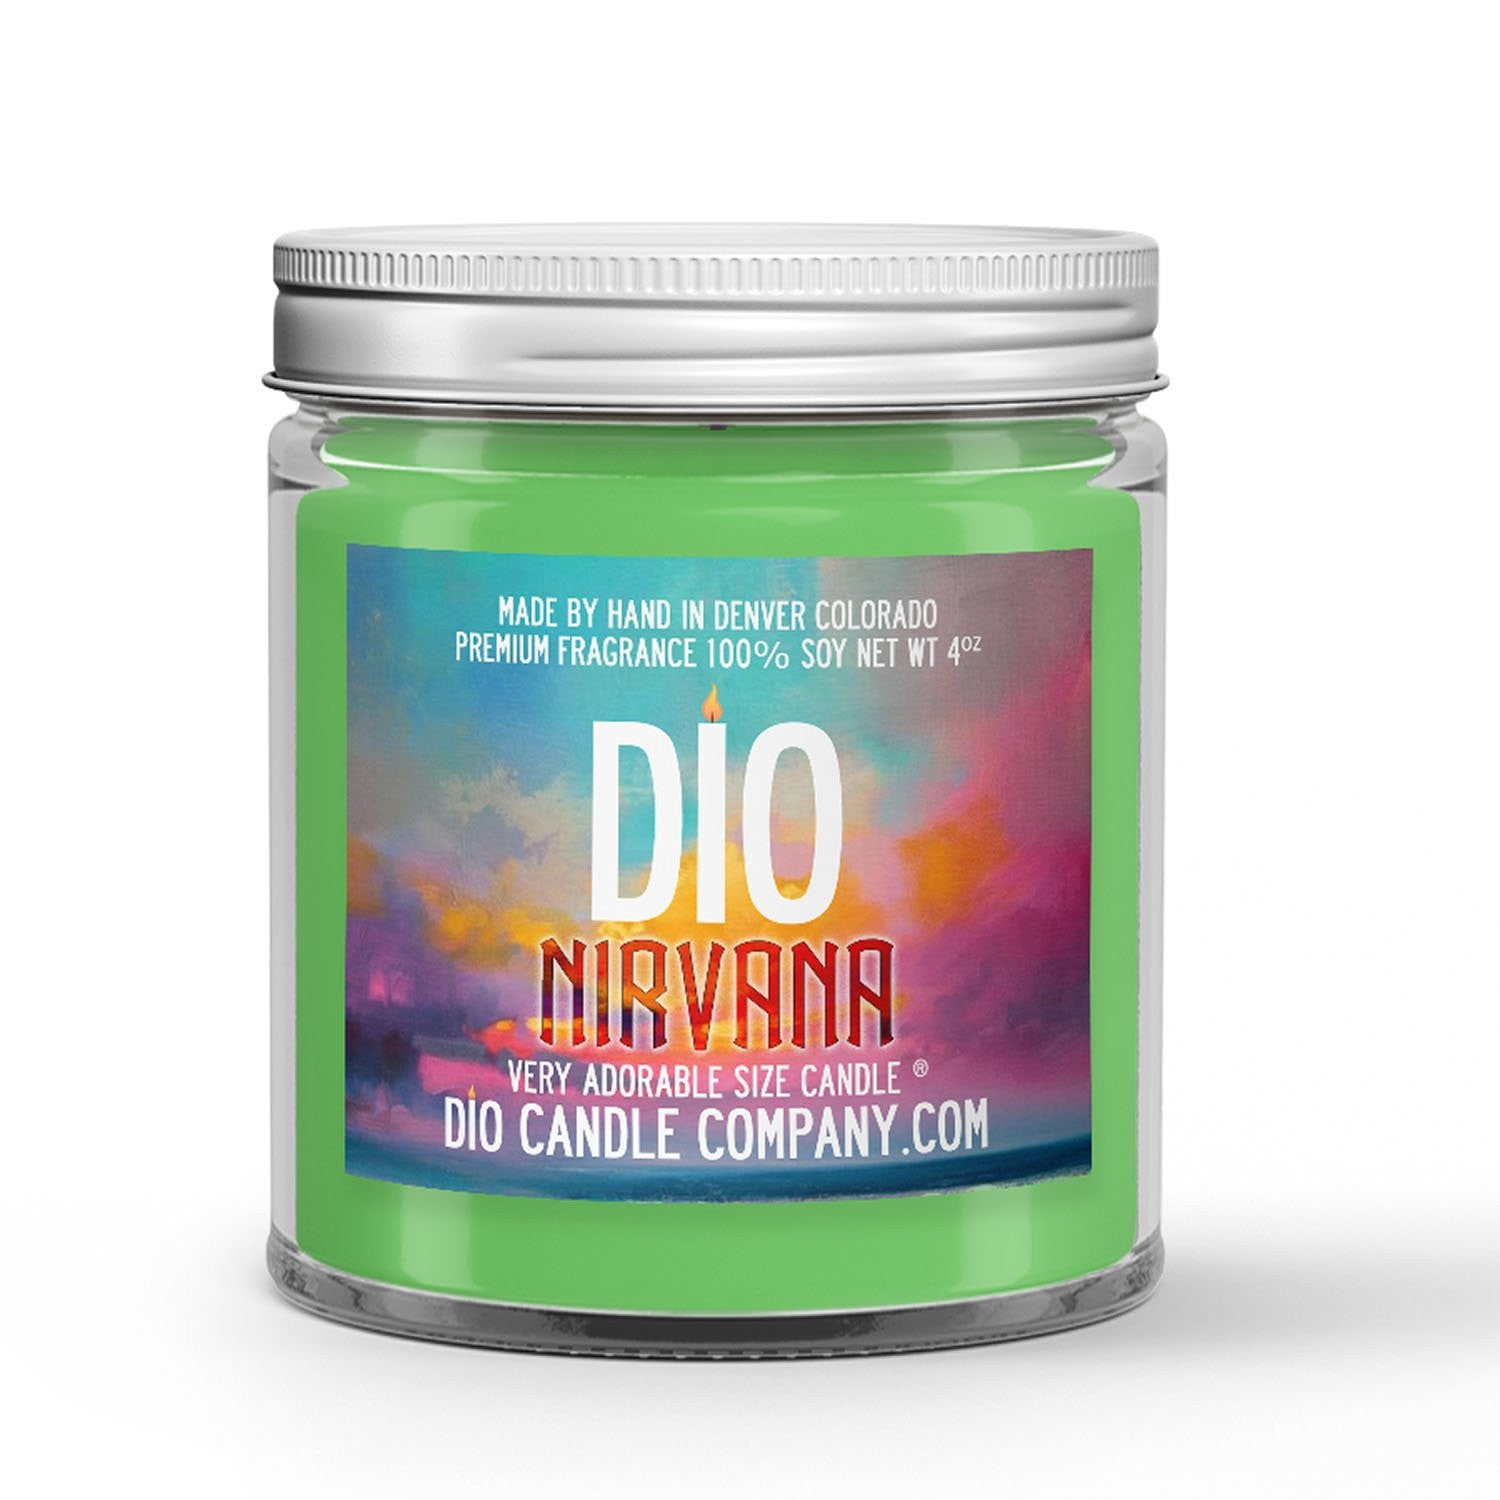 Nirvana Candle - Eucalyptus - Spearmint - 4oz Very Adorable Size Candle® - Dio Candle Company